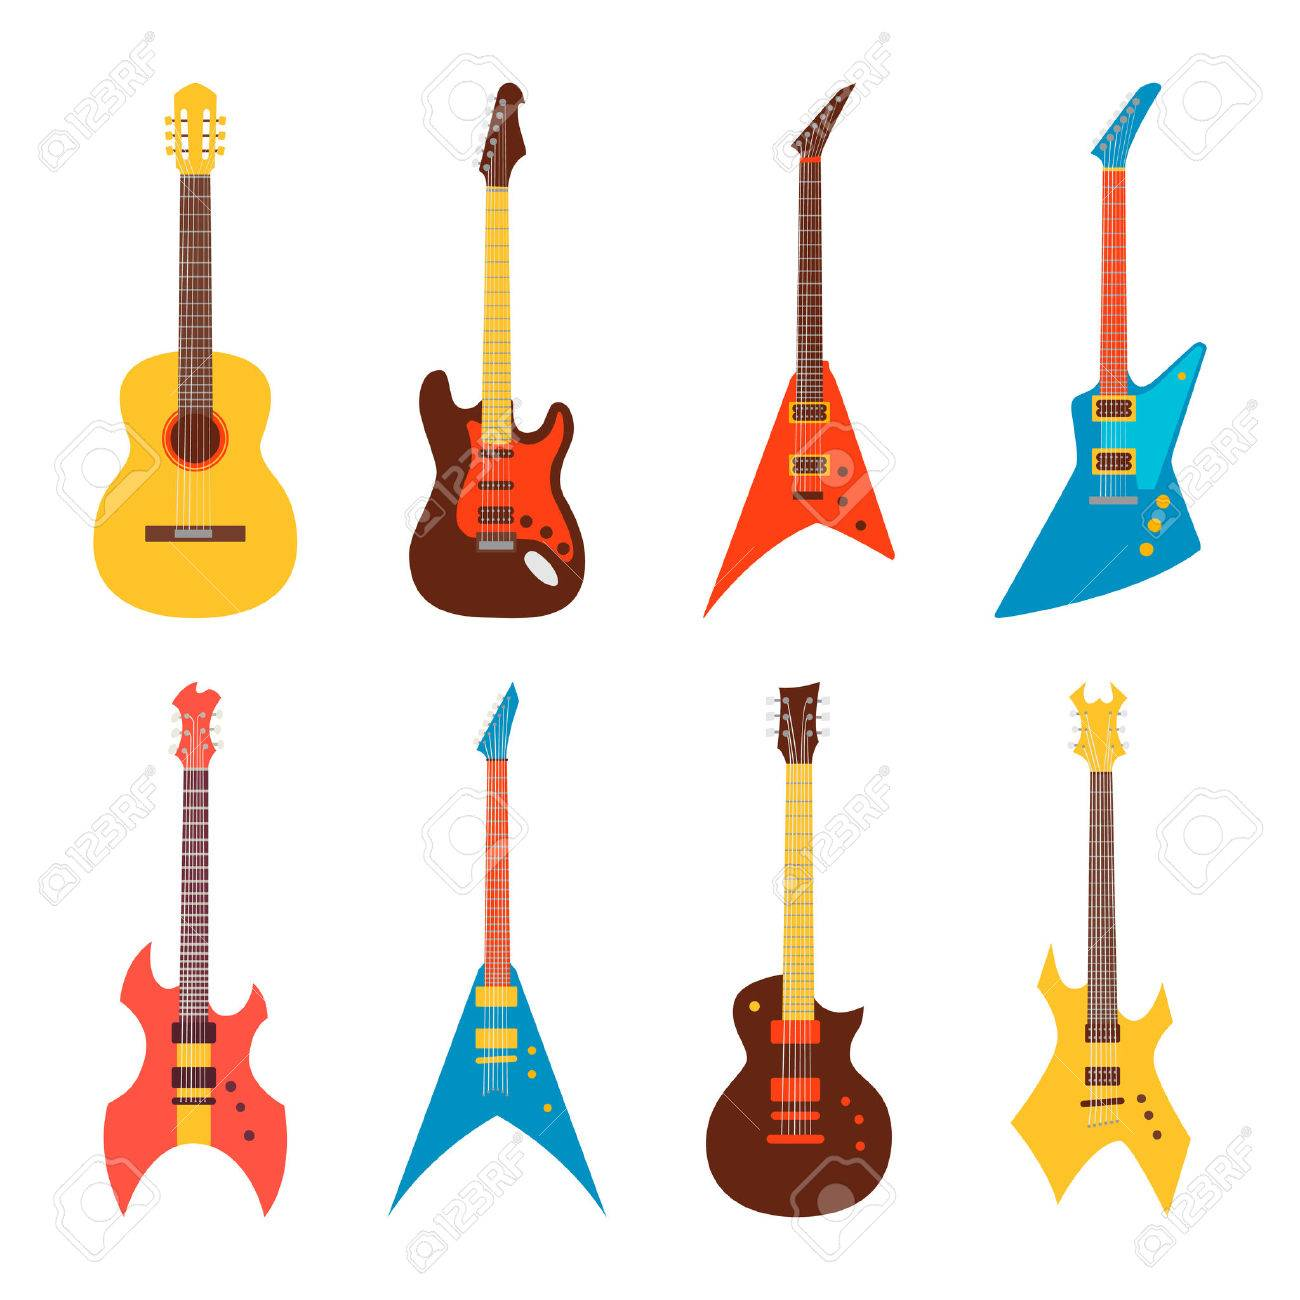 acoustic and electric guitars set. flat style vector illustration - 42858025